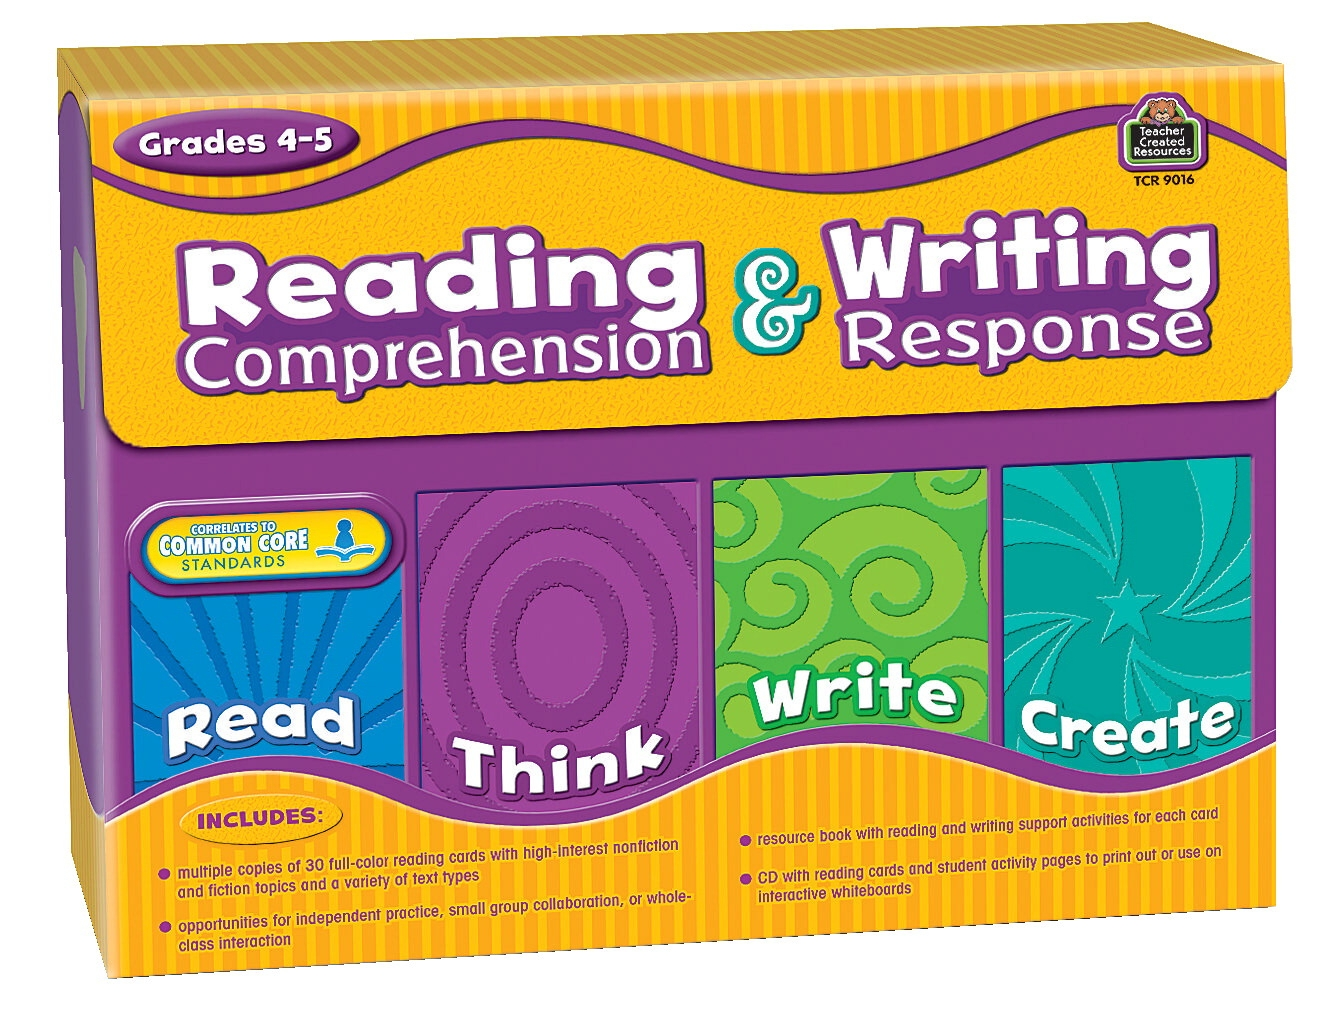 Teacher Created Resources Reading Comprehension & Writing Response; Gr. 4 To 5 - 1568060 - Instructional Materials Resources Science Activities Equipment Physical Science Projects Books 1568060